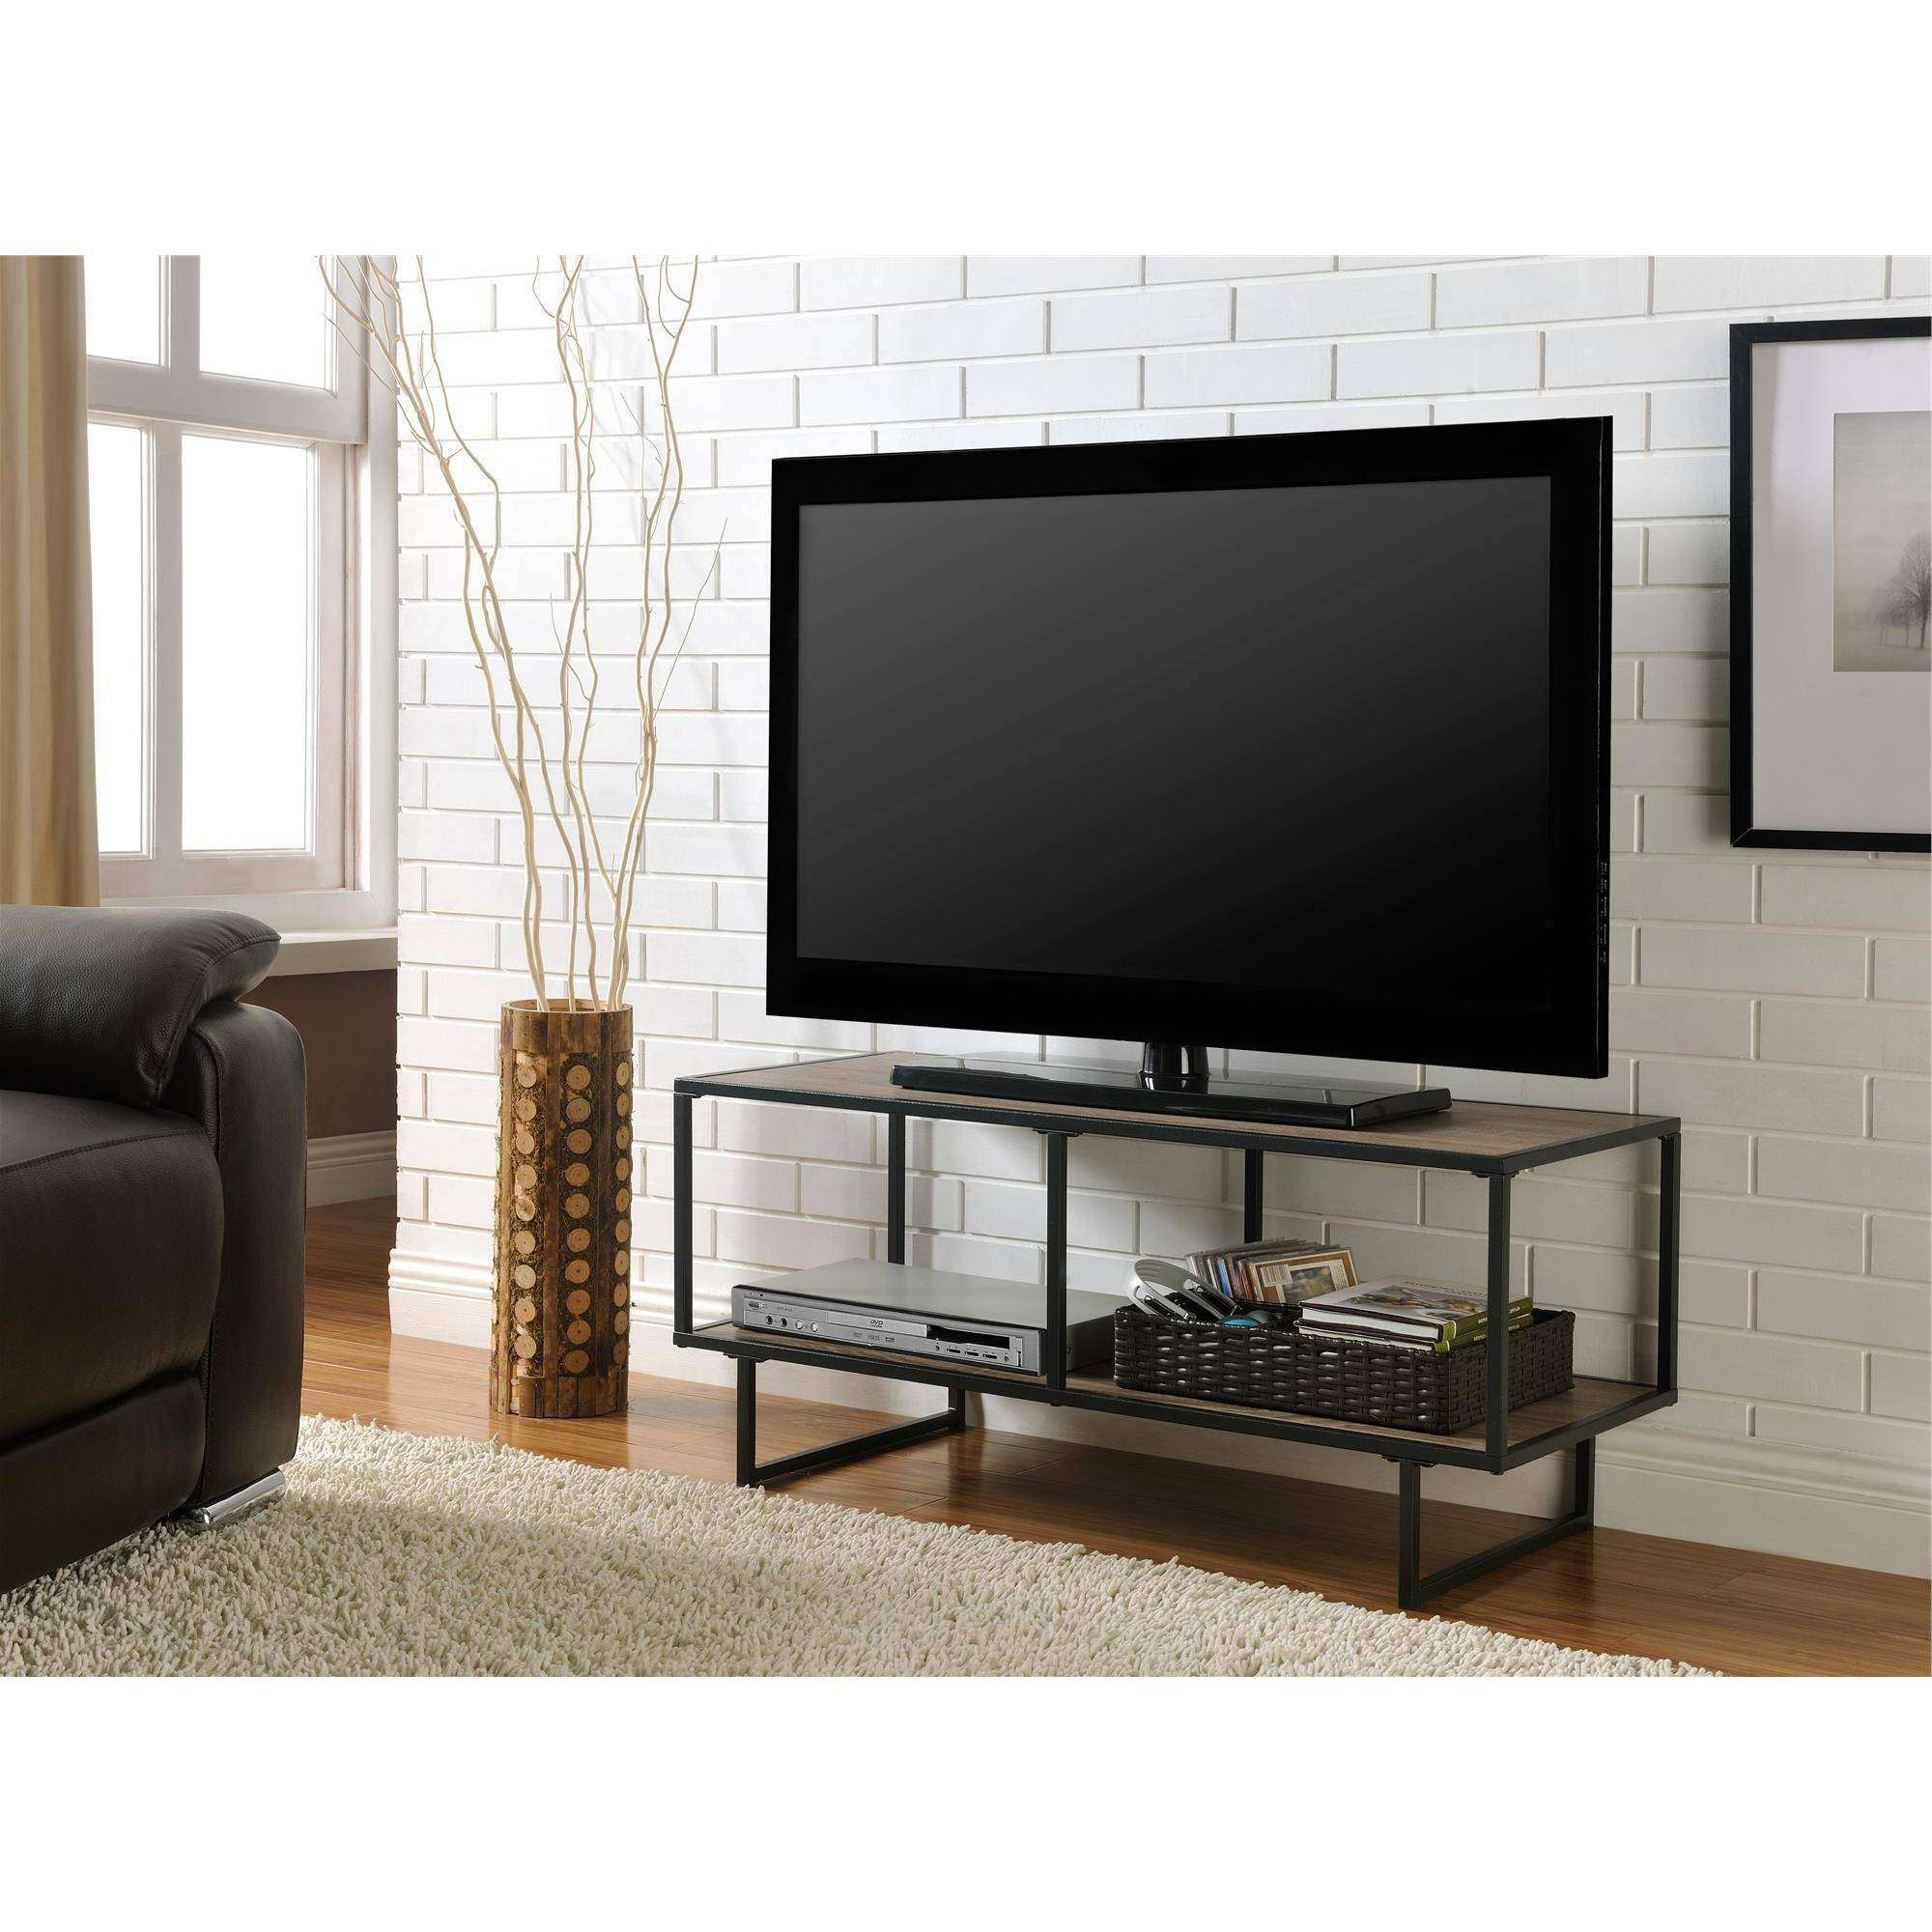 Altra Furniture Emmett 1 Shelf Tv Stand Coffee Table In Sonoma Oak Throughout Industrial Metal Tv Stands (View 1 of 15)